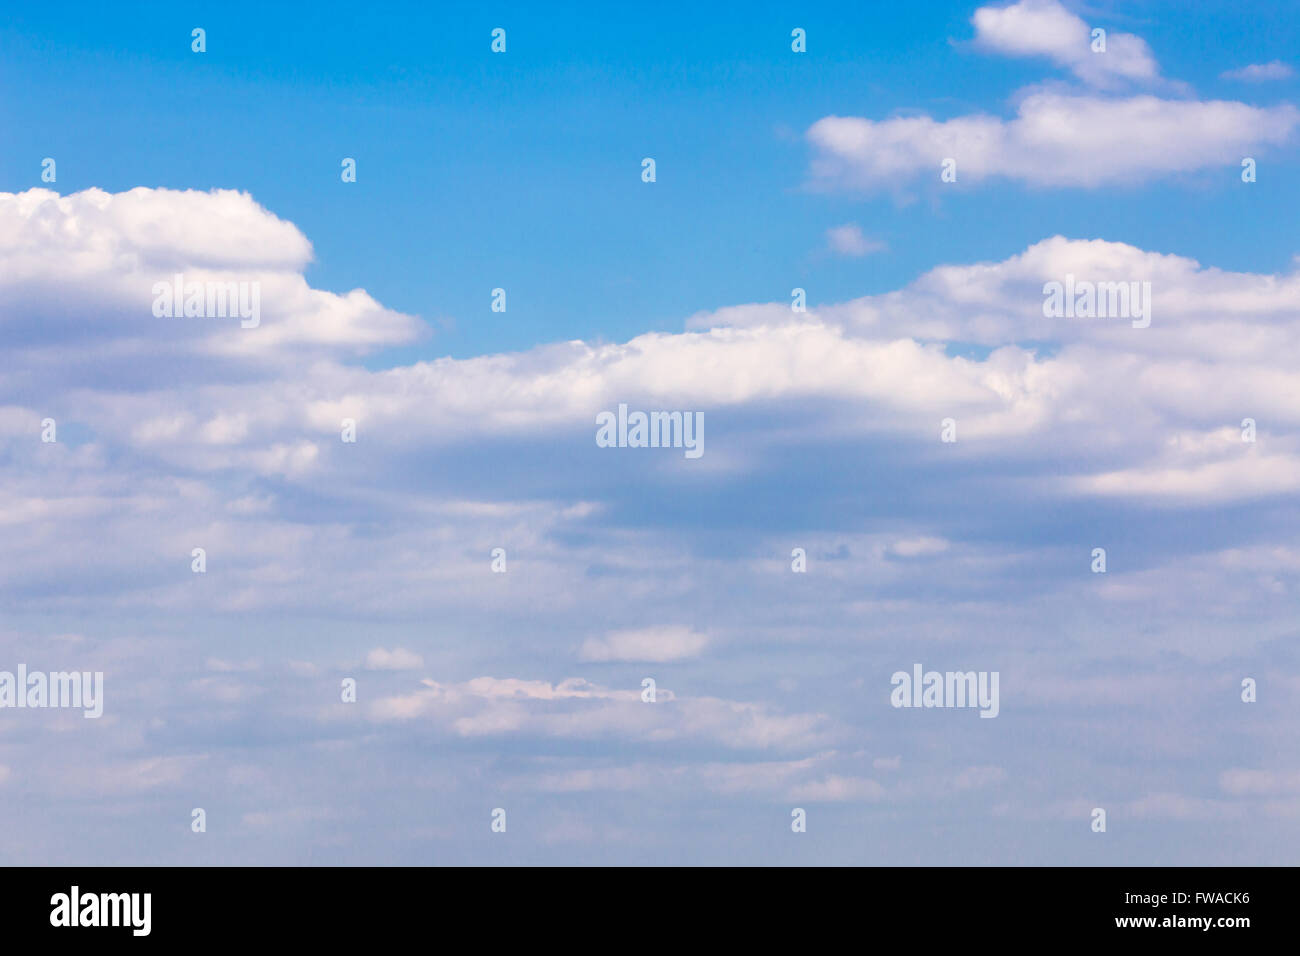 blue sky with fluffy clouds in daylight - Stock Image